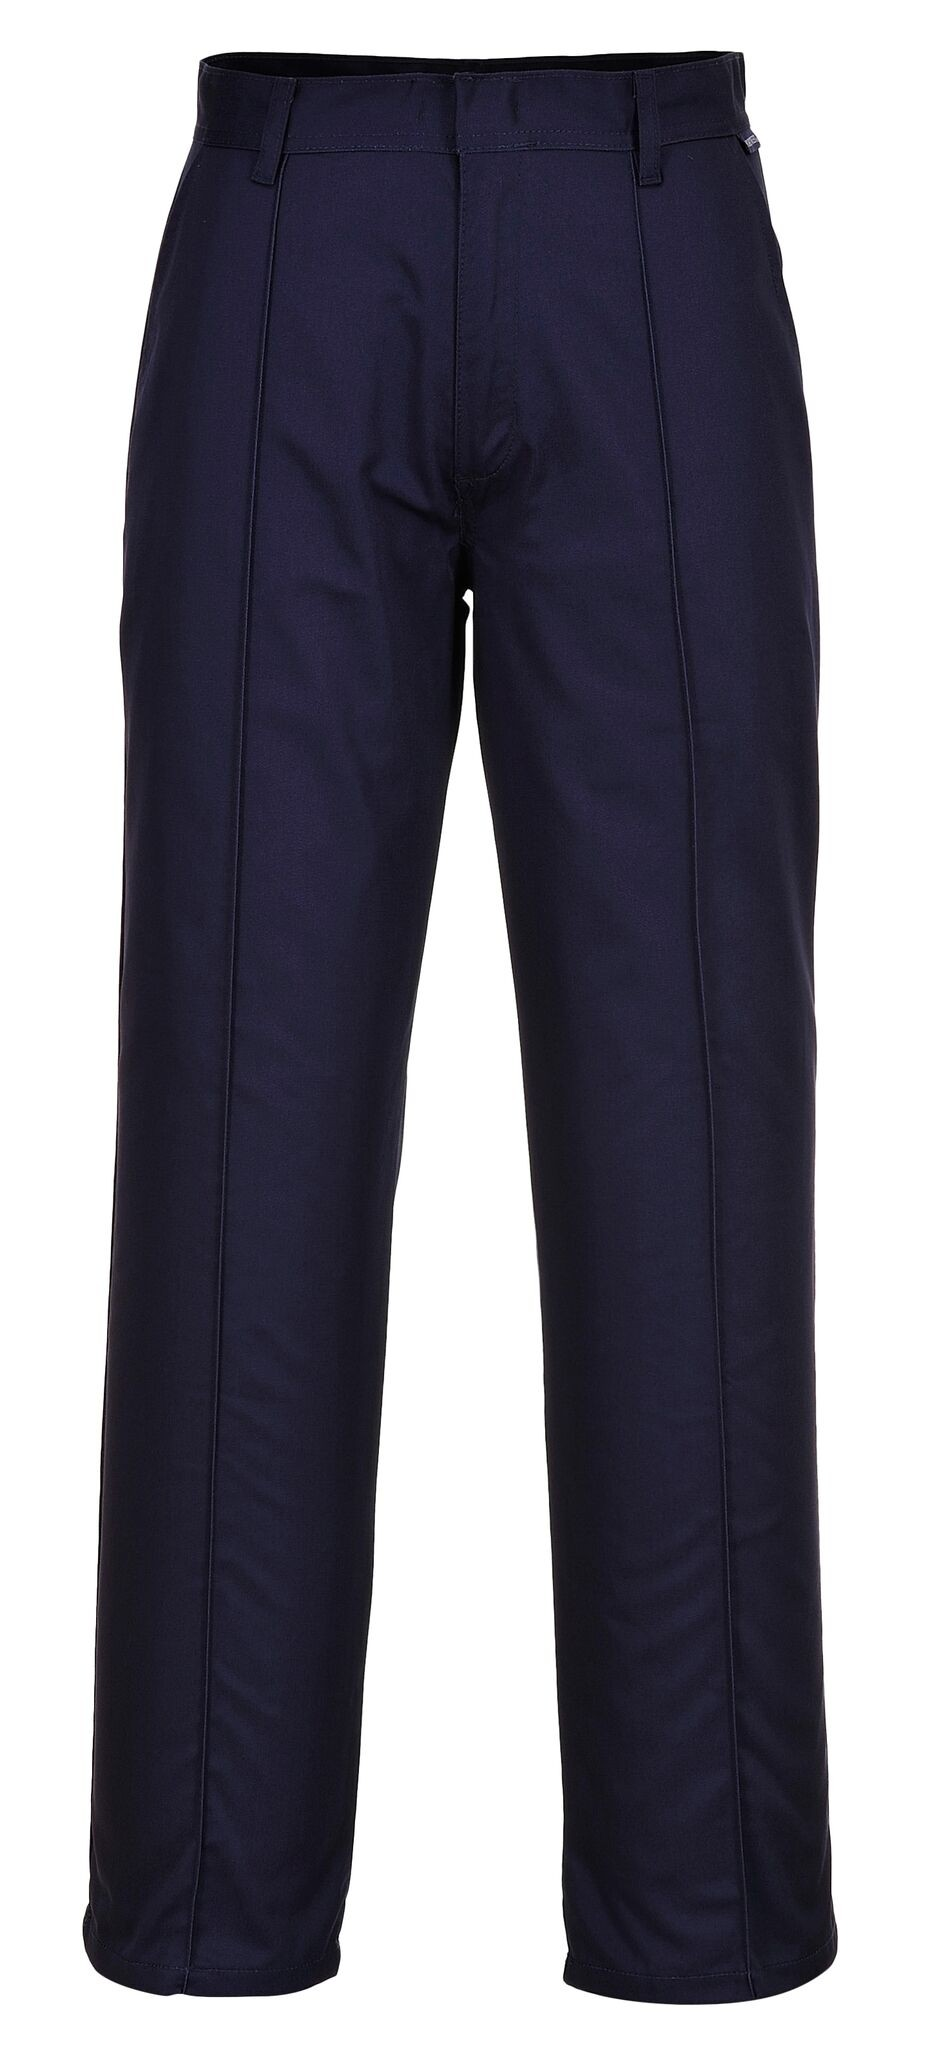 Portwest Standard Drivers Trousers